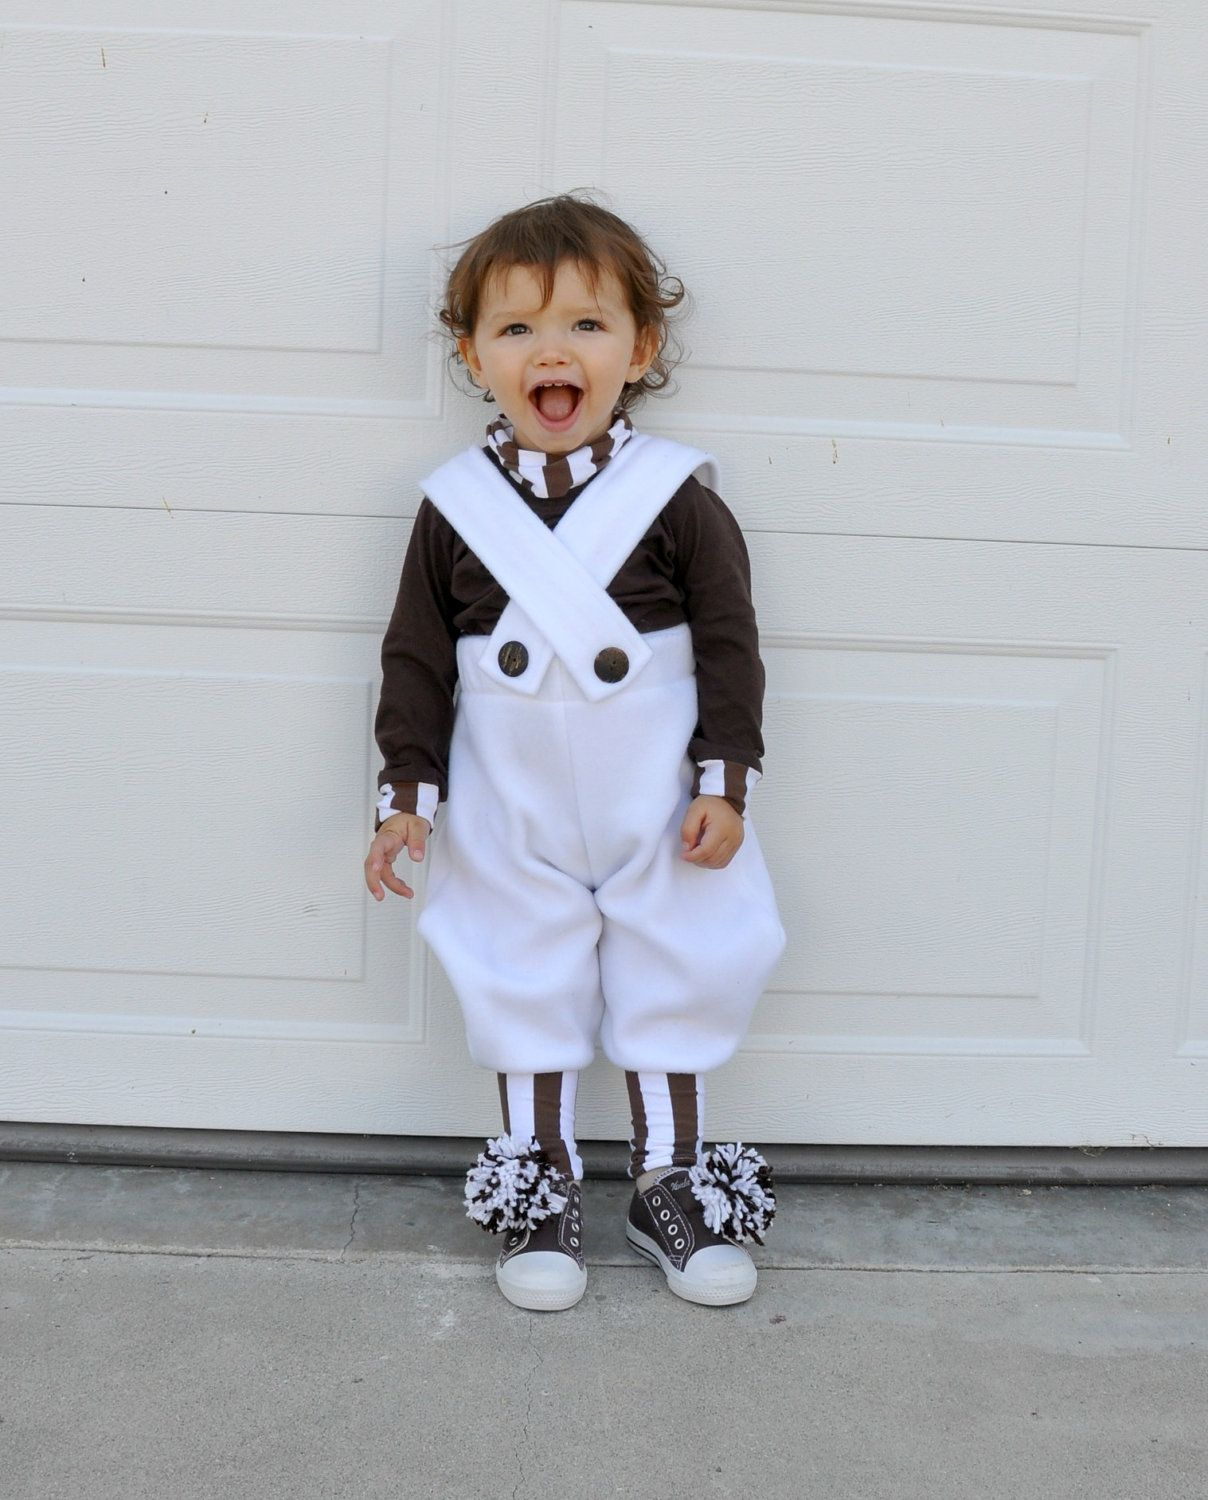 Oompa loompa inspired costume boy kids children toddlers babies baby Halloween costumes birthday parties.  sc 1 st  Pinterest & Oompa loompa inspired costume boy kids children toddlers babies baby ...